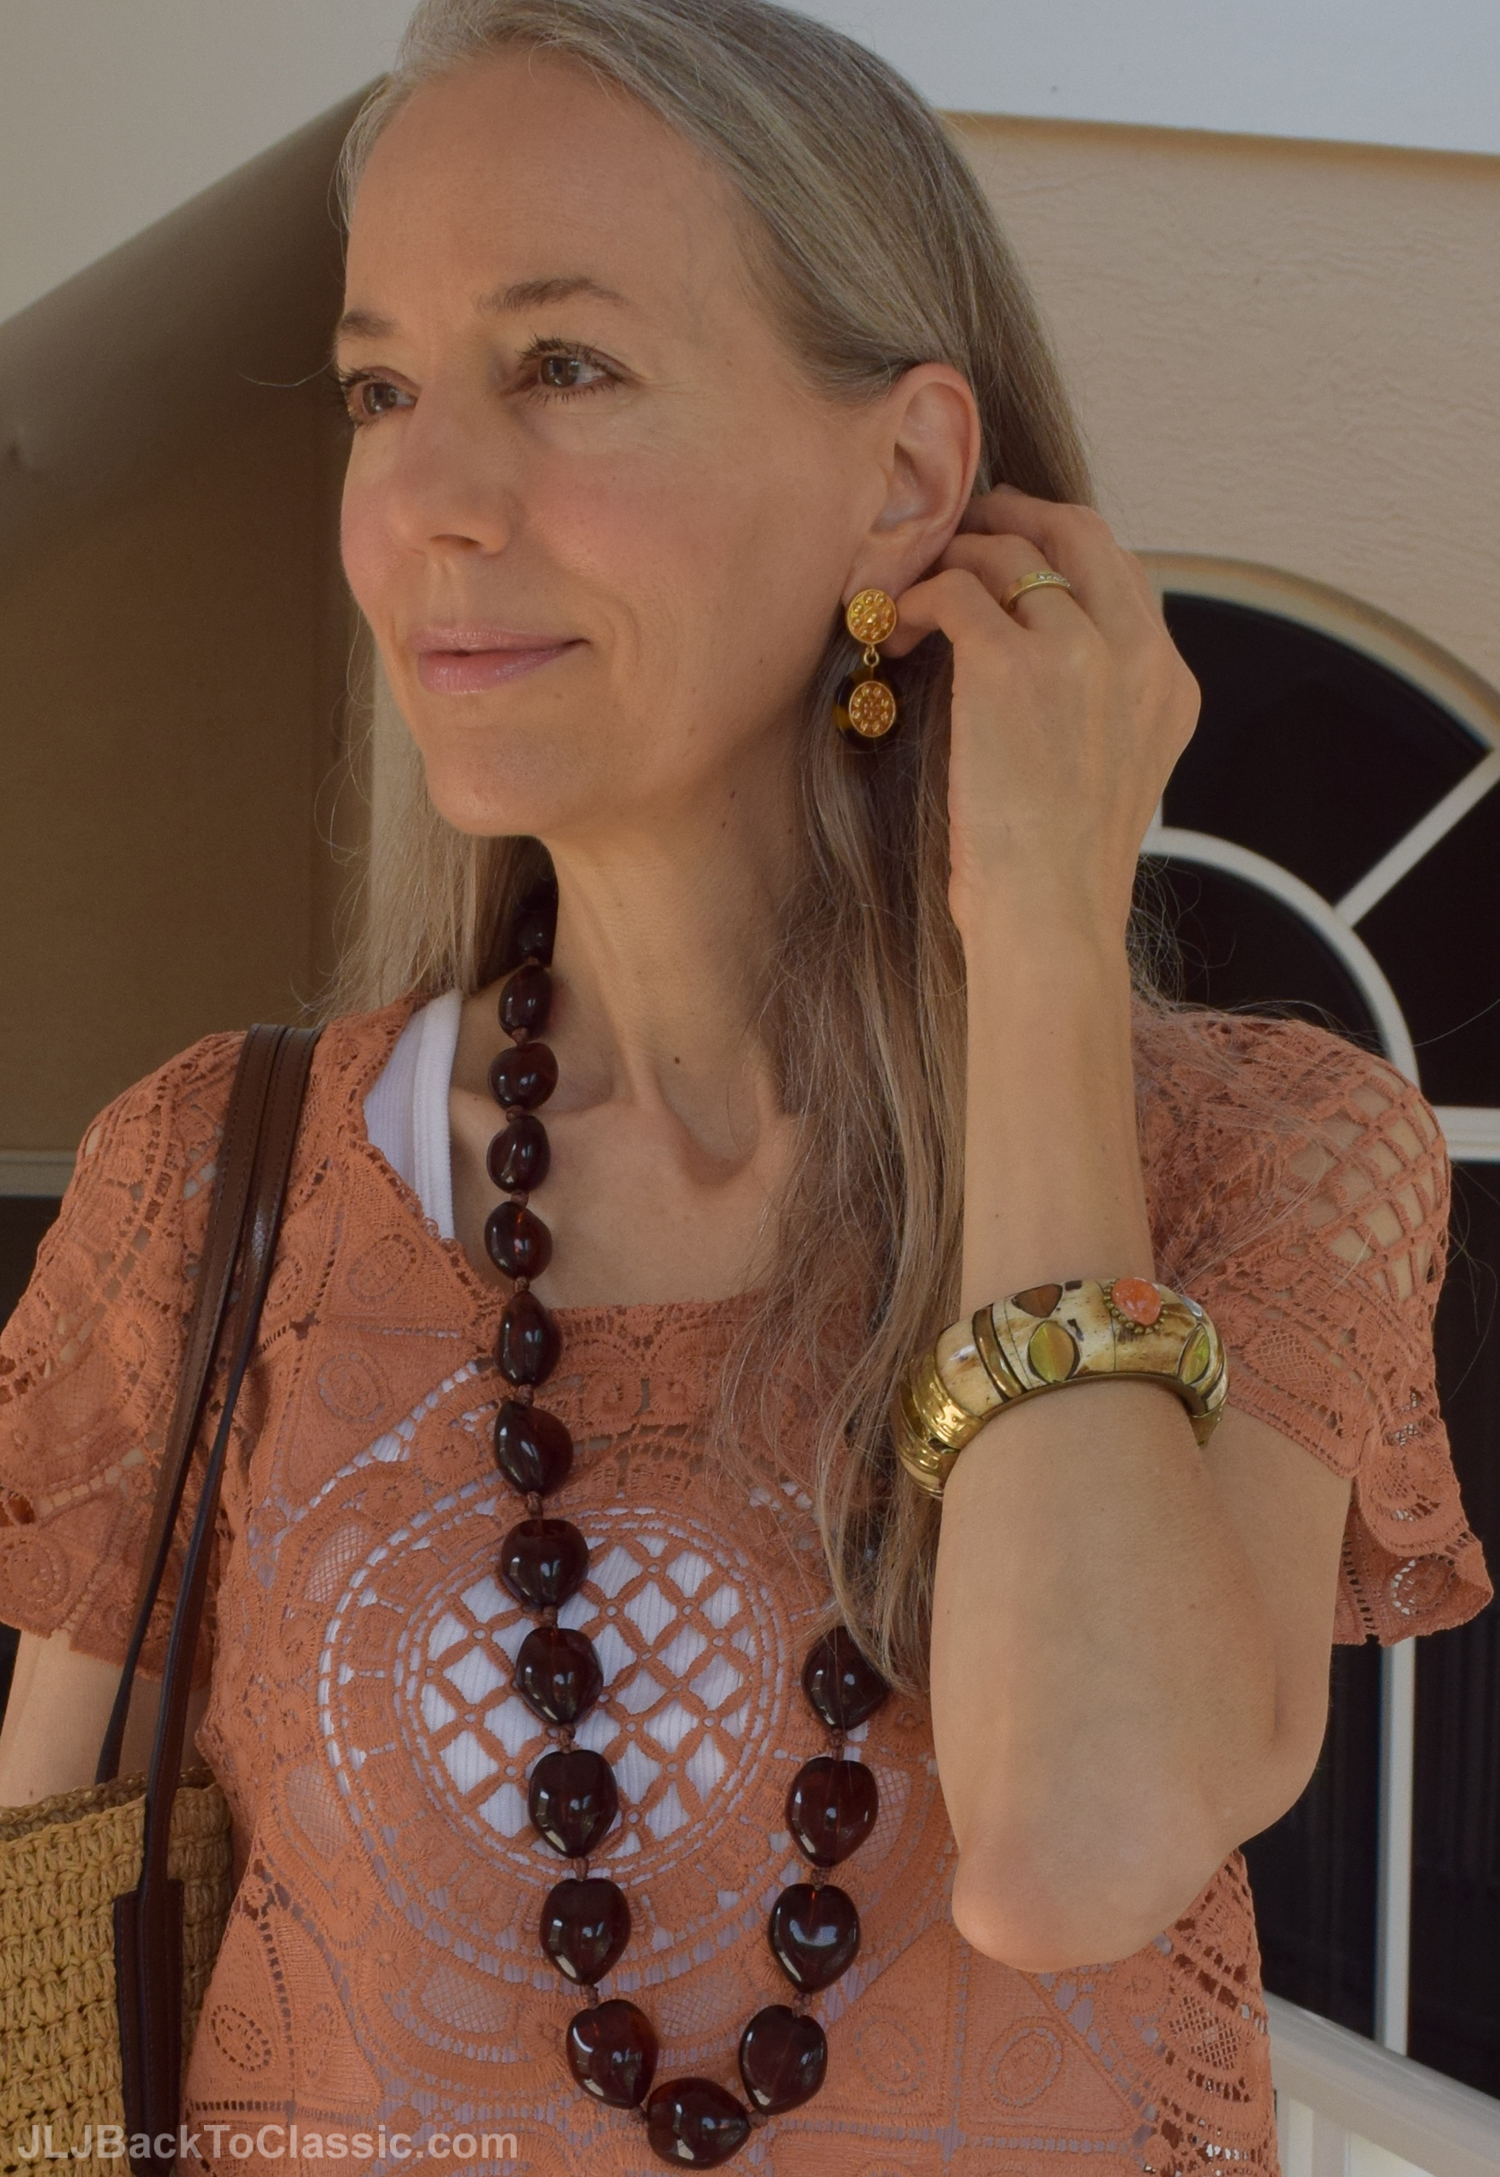 Tory-Burch-Earrings-Anthropologie-Top